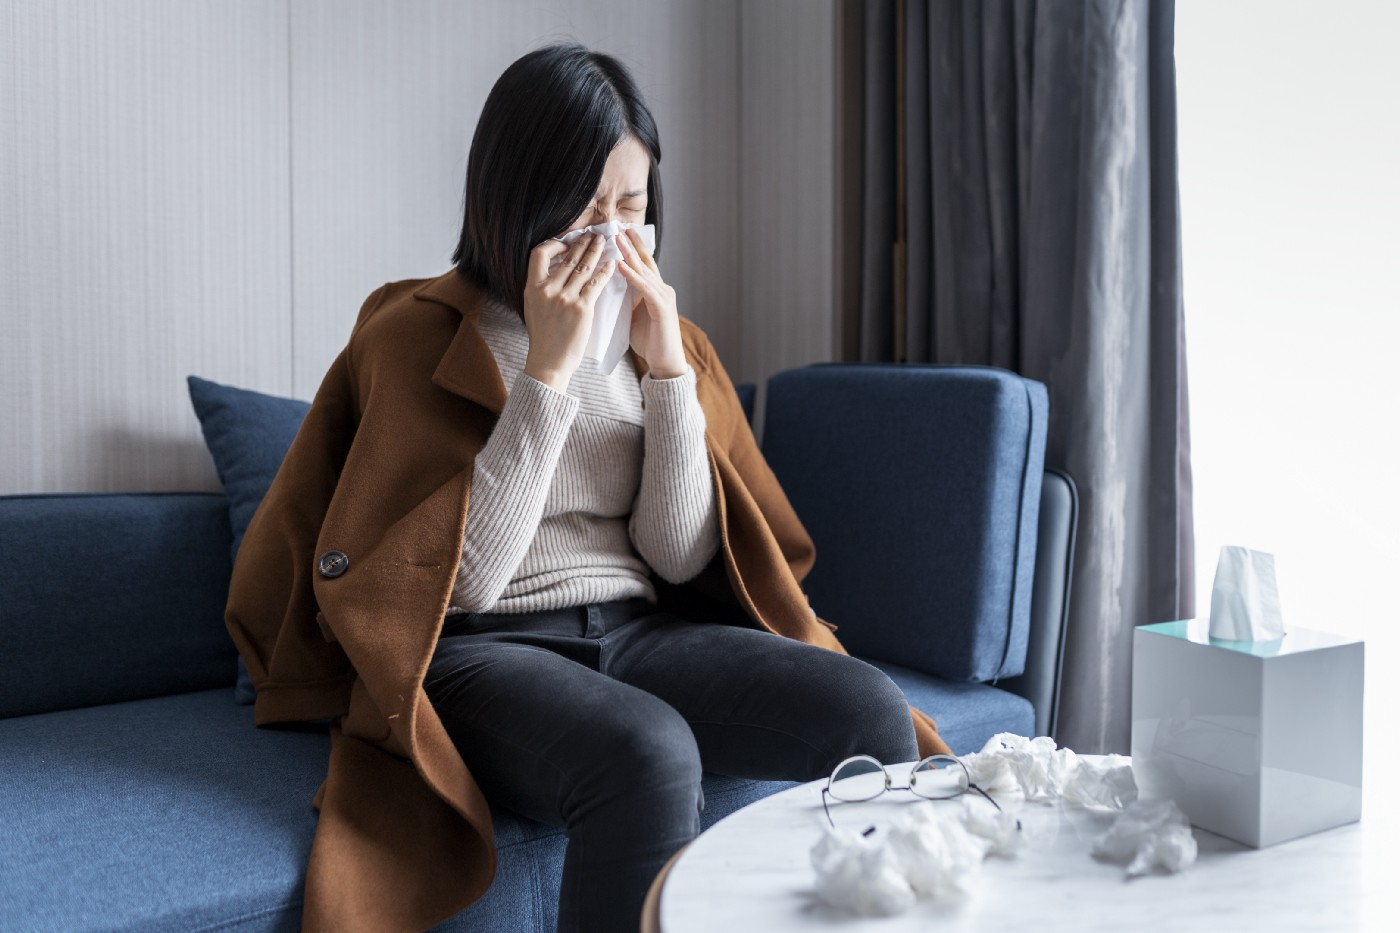 A woman sneezes into a tissue and wipes her nose.